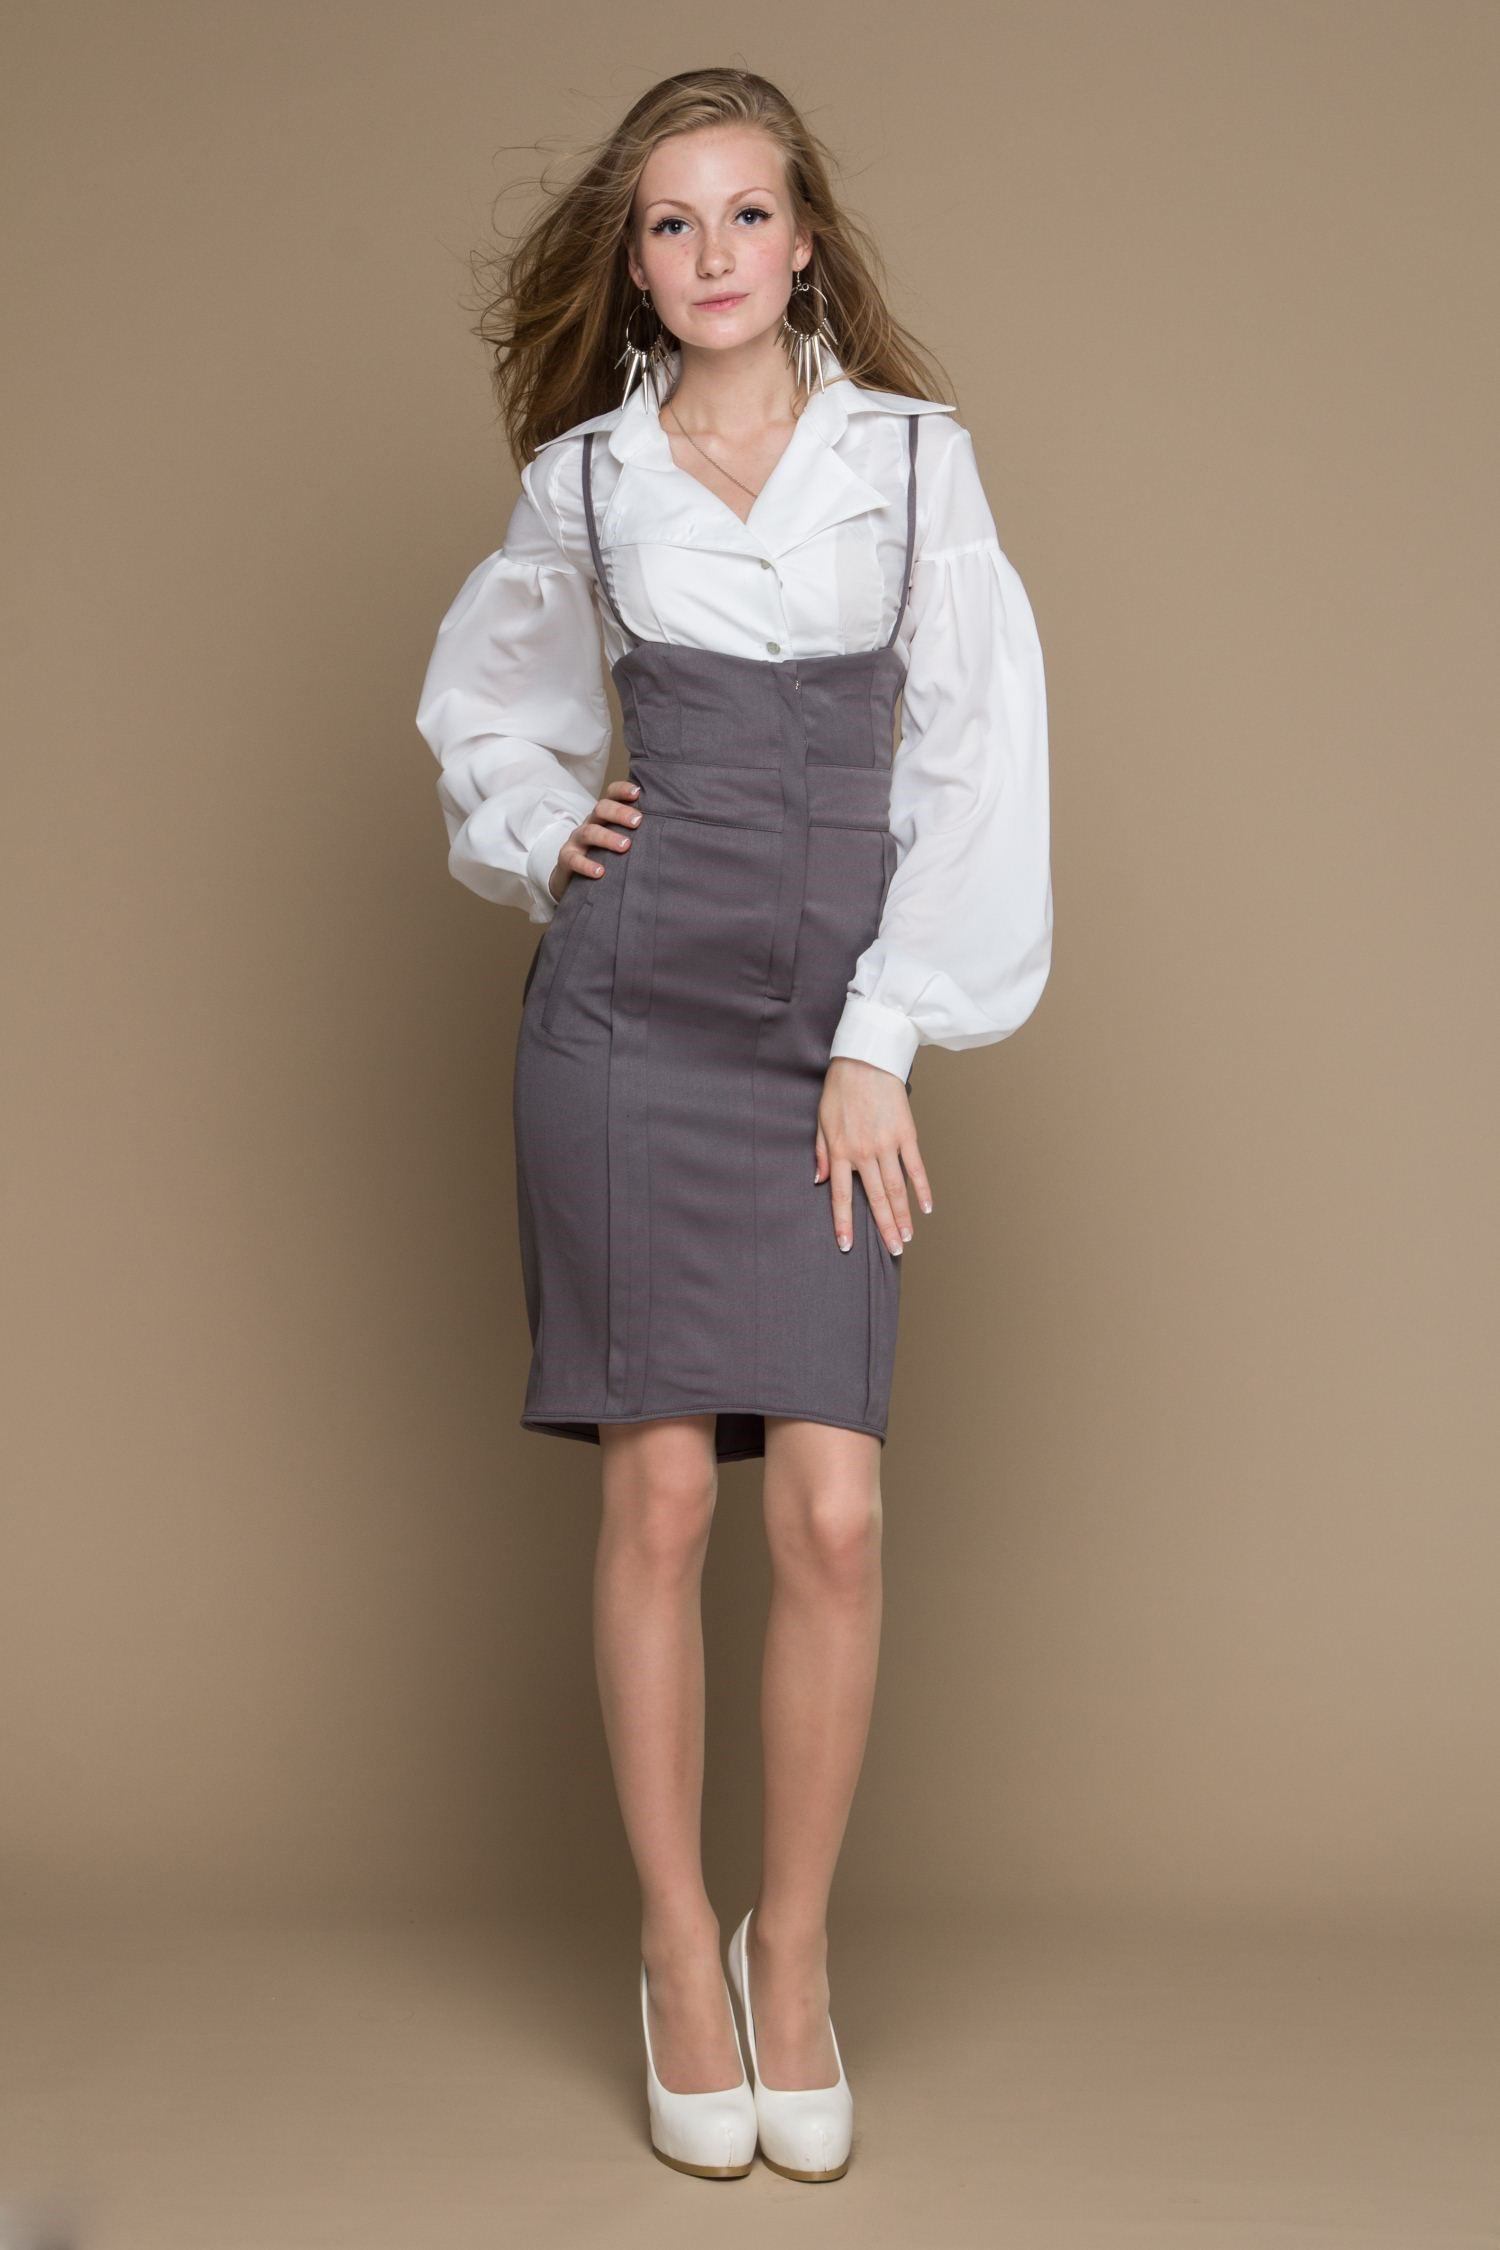 Smart skirt with high waist, lace and bow behind. bcaa 3300